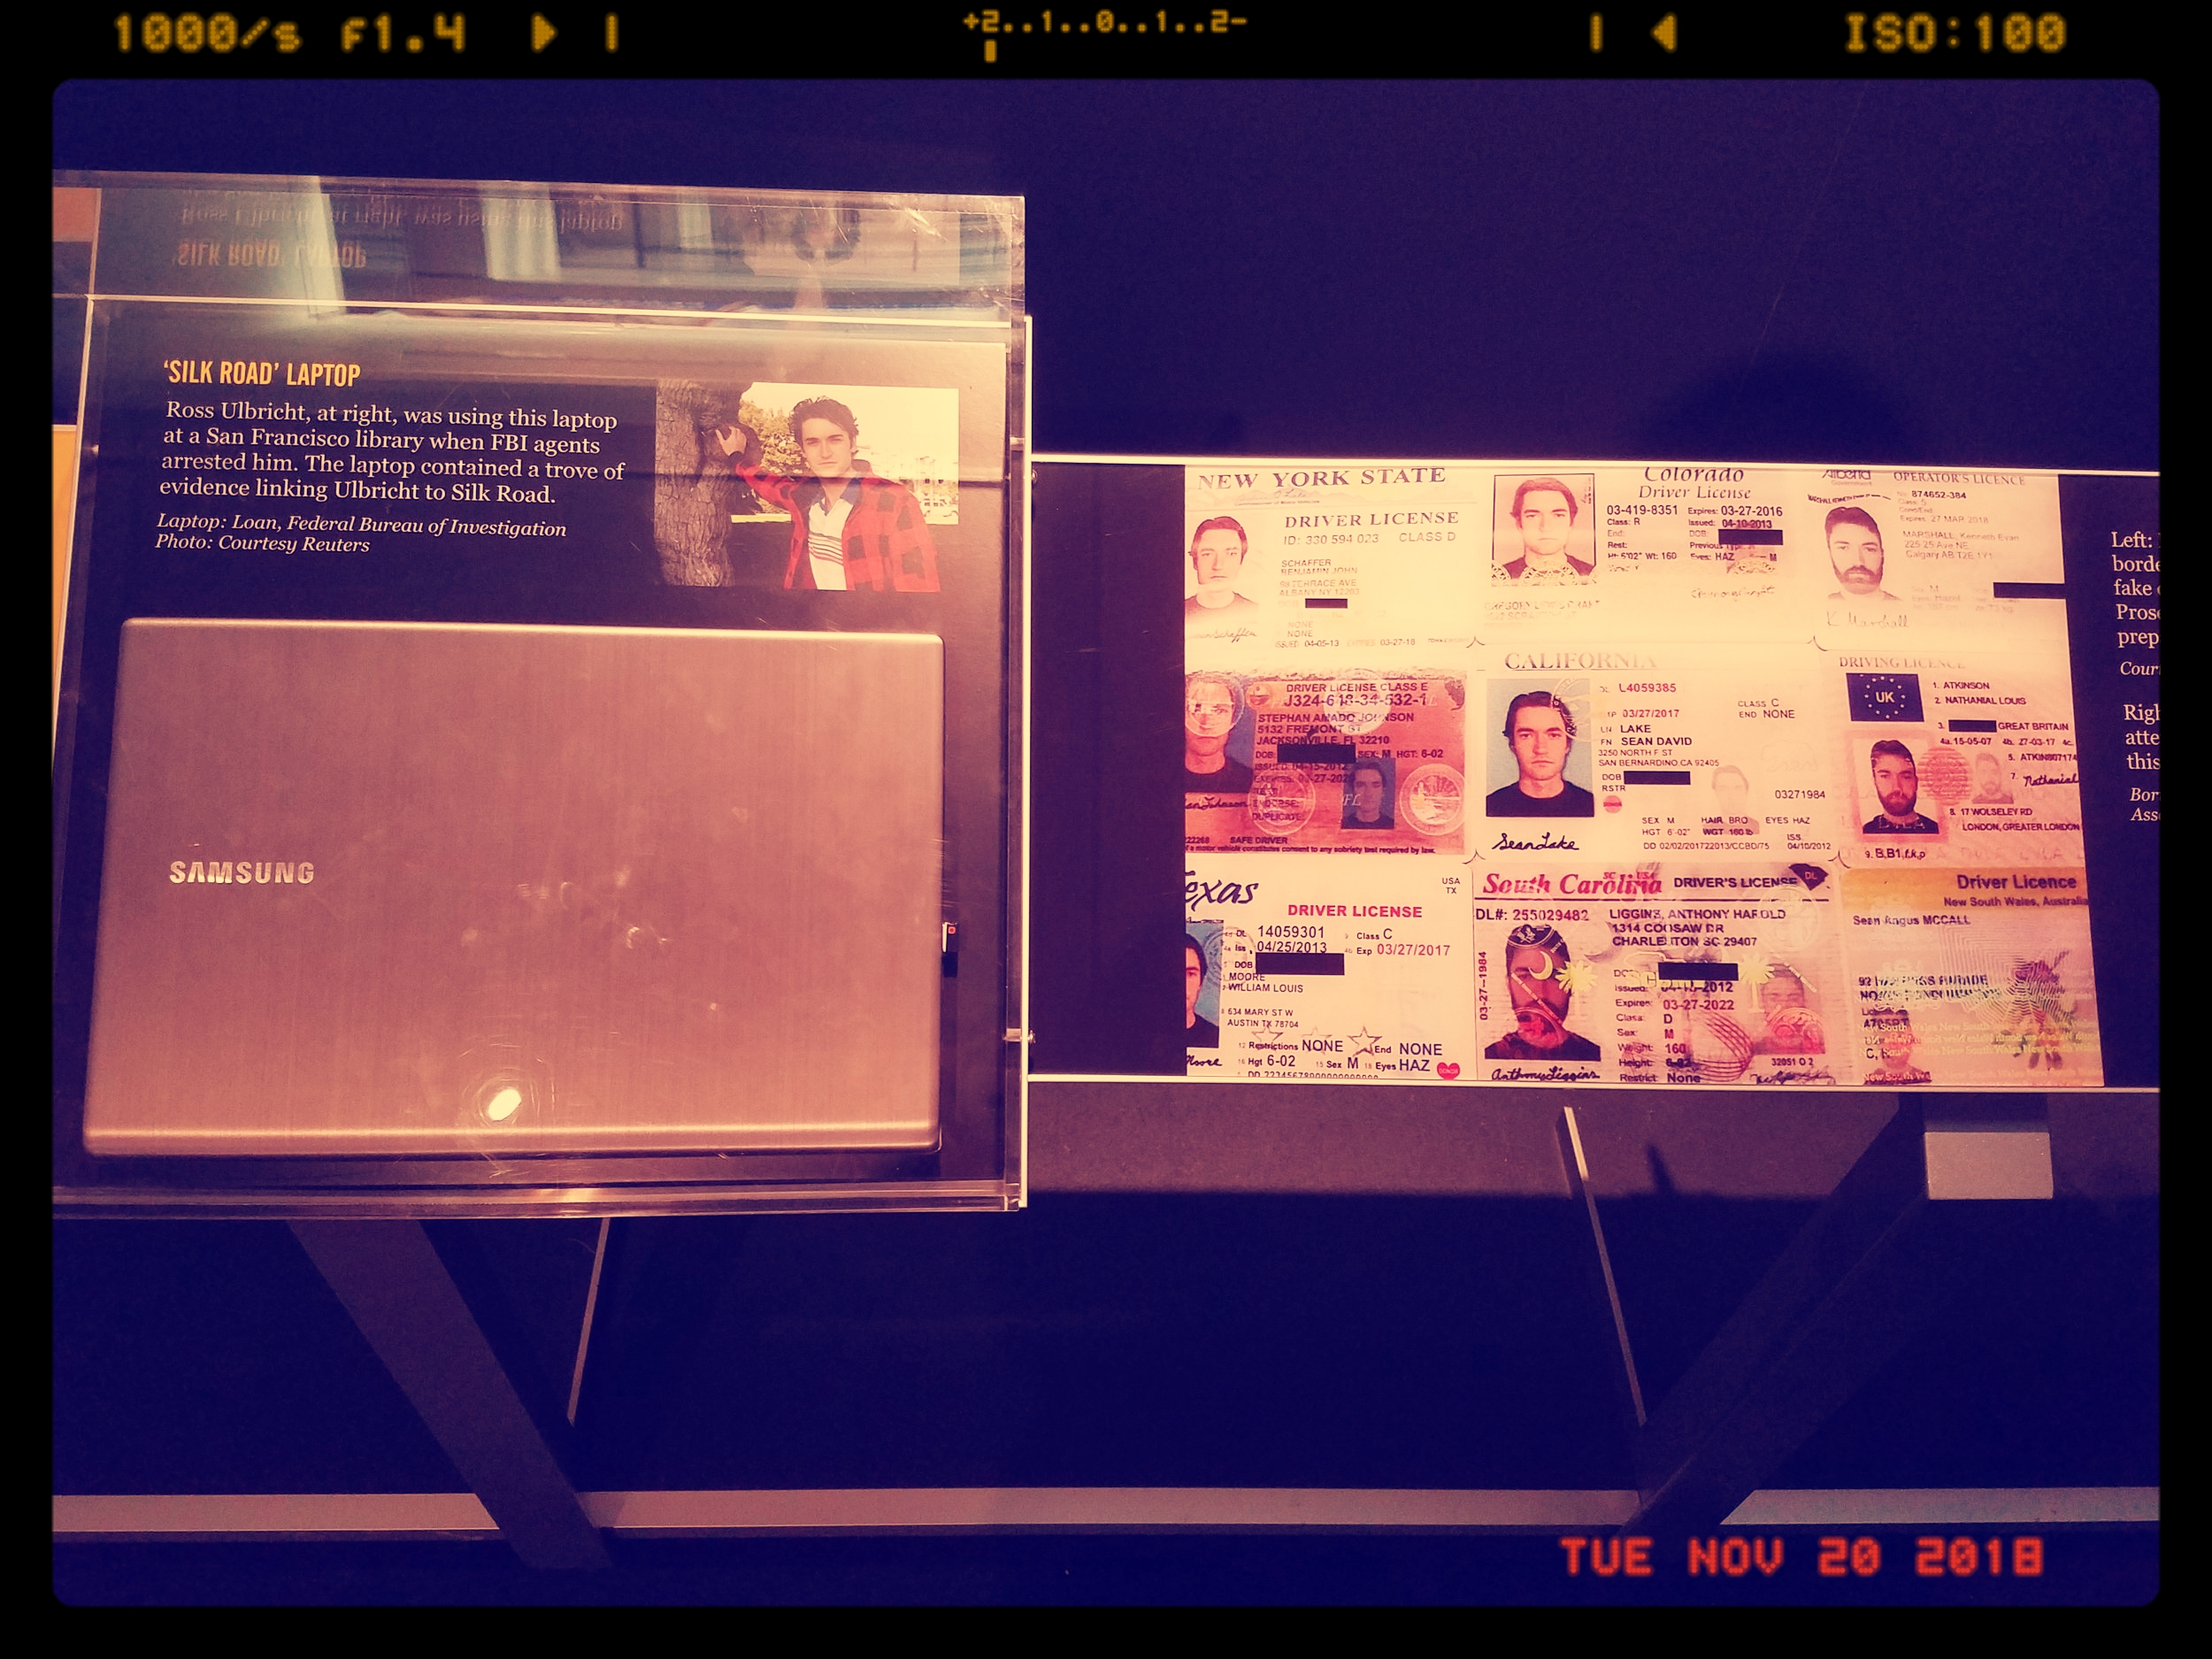 Ross Ulbricht's (Founder of Silk Road) lap top on Exhibit In Newseum in D.C.